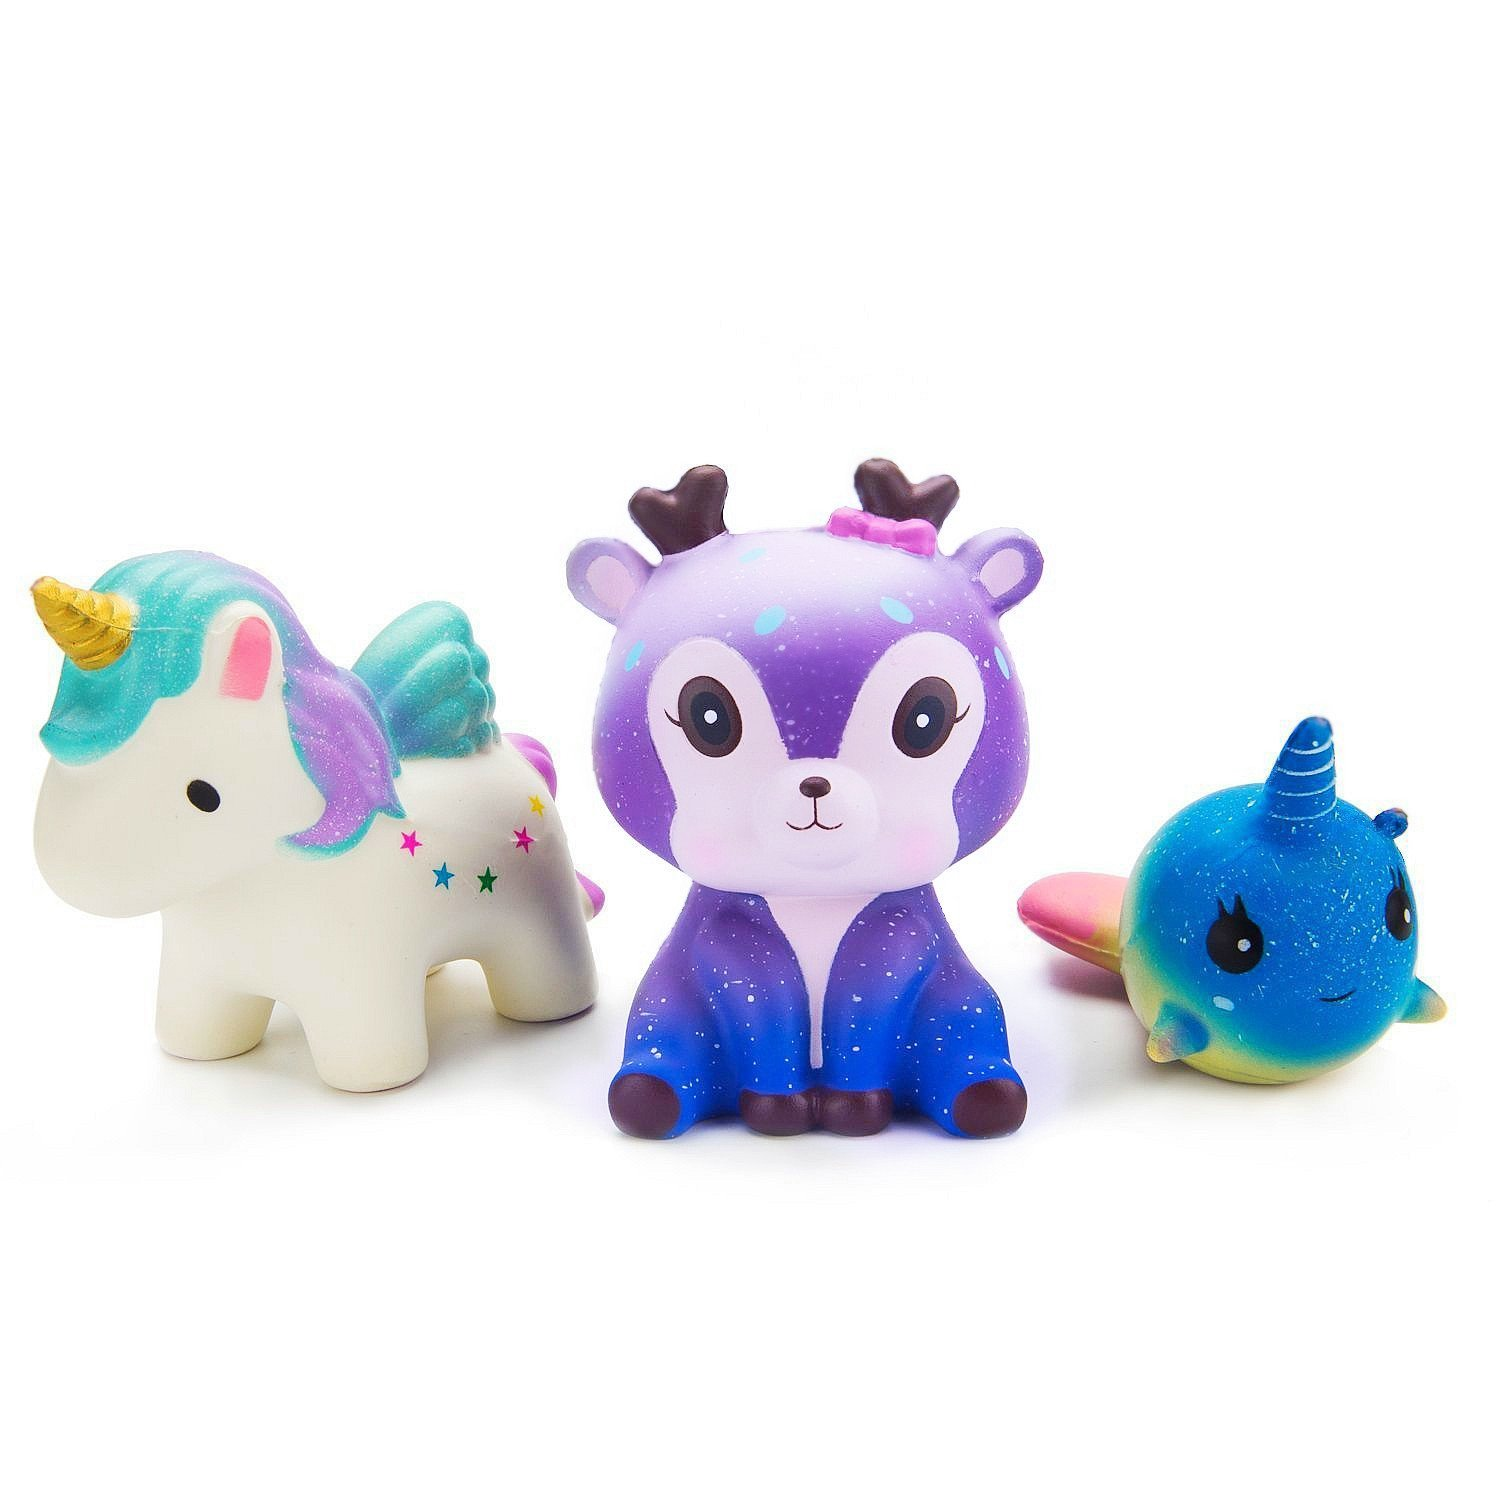 WATINC Kawaii 3 PCS Jumbo Squishy Toys,Starry Deer Unicorn Whale 3pcs Scented Slow Rising Squishies Charms Lovely Toy for Kids , Stress Relief Toy, Decorative Props Large(Starry Deer 3p)